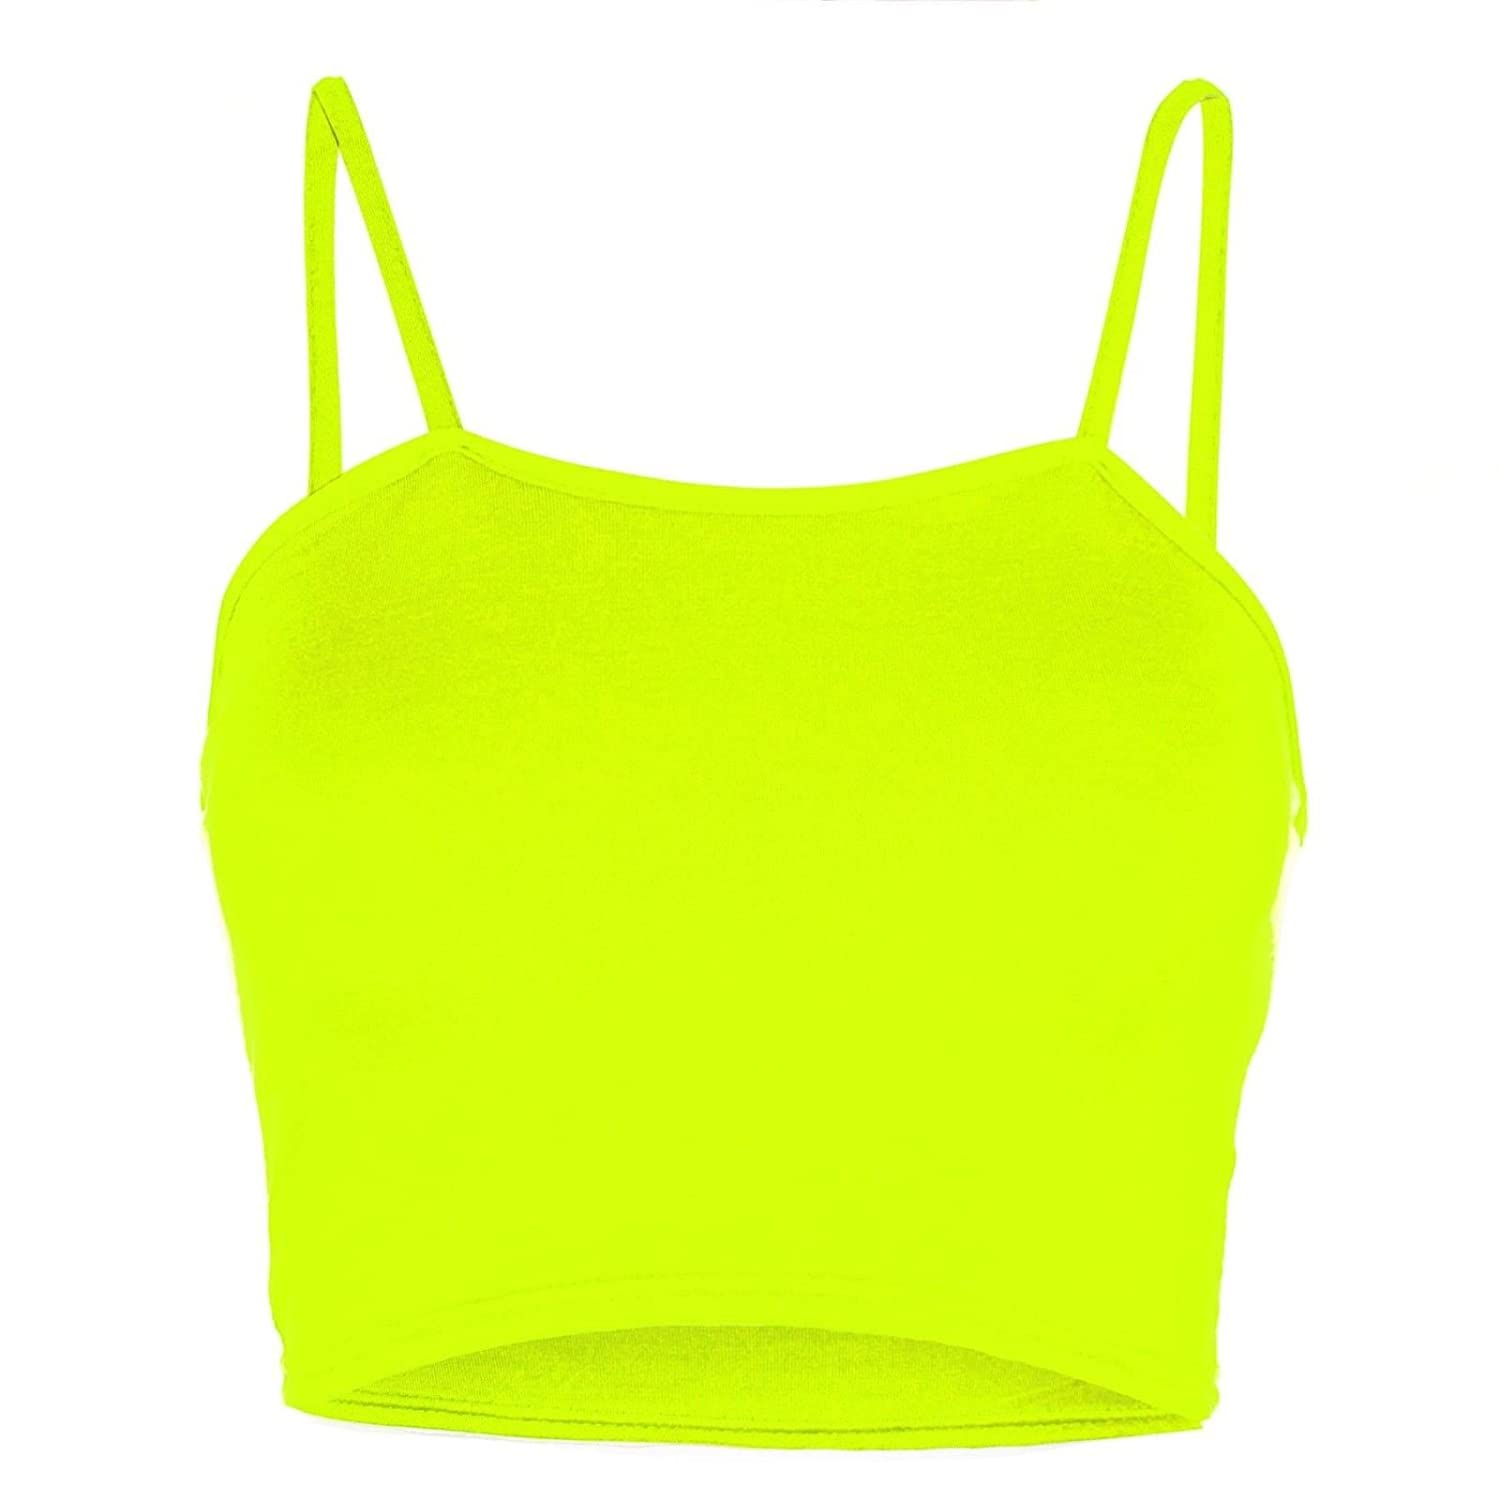 Womens Ladies Plain Sleeveless Strappy Cami Bandeau Boobtube Bralet Cropped Top